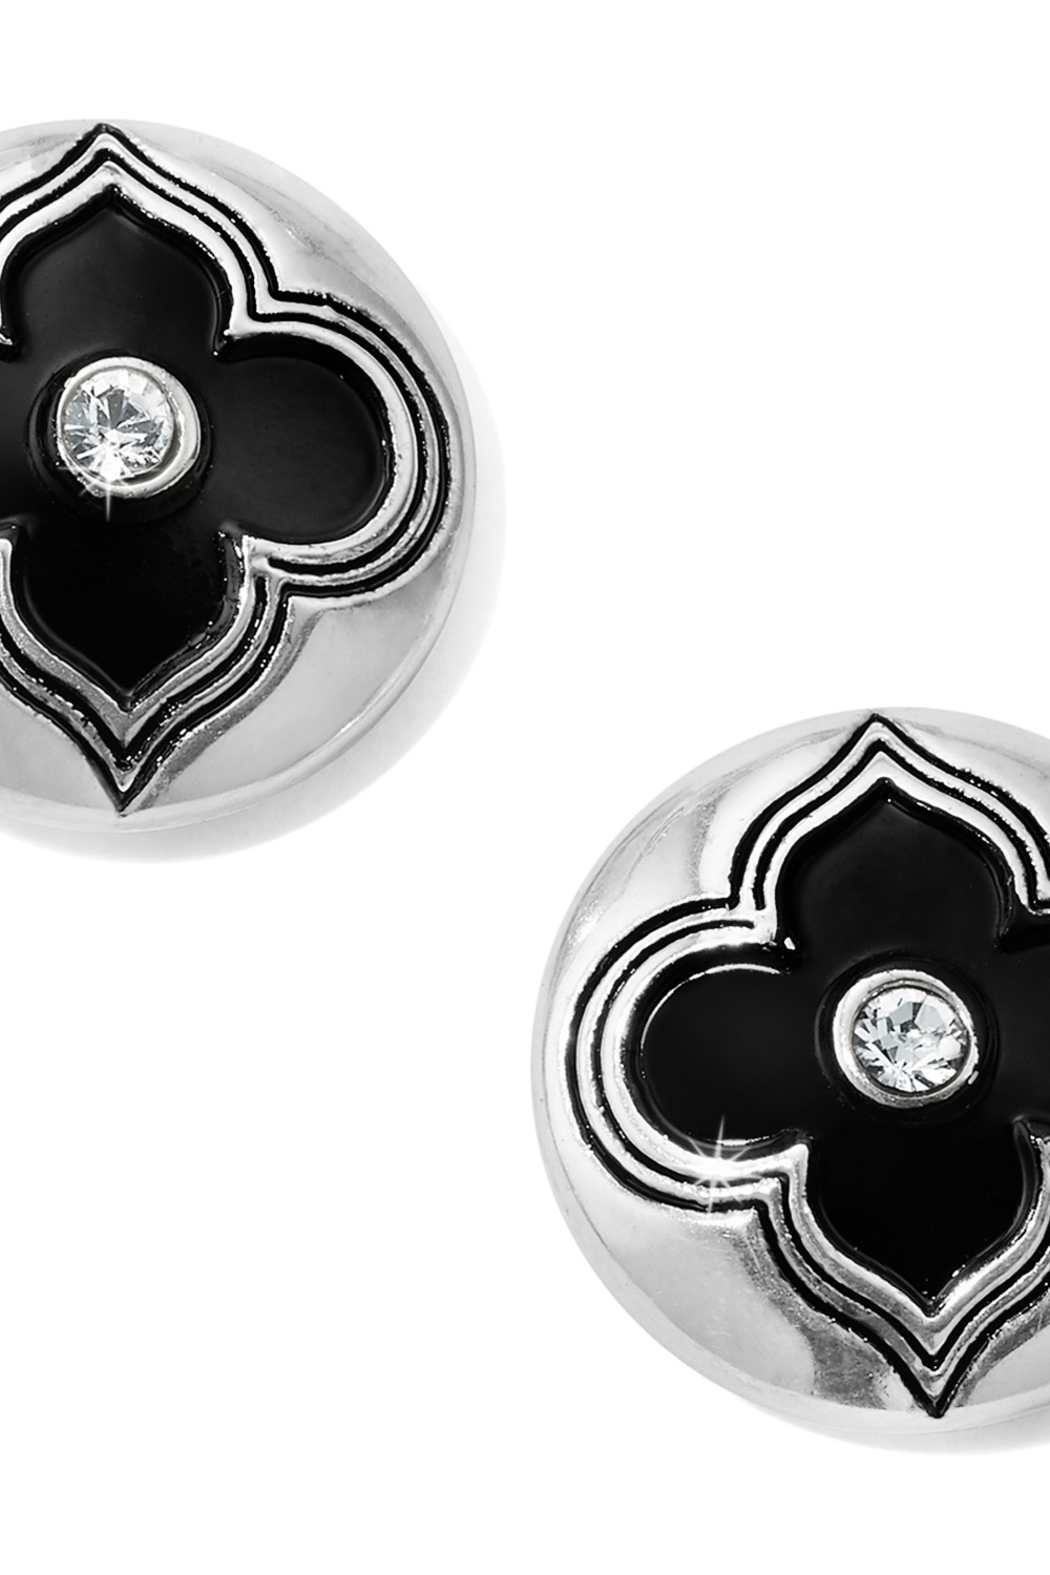 Brighton Toledo Collective Post Earrings JA56600 1134 - Main Image